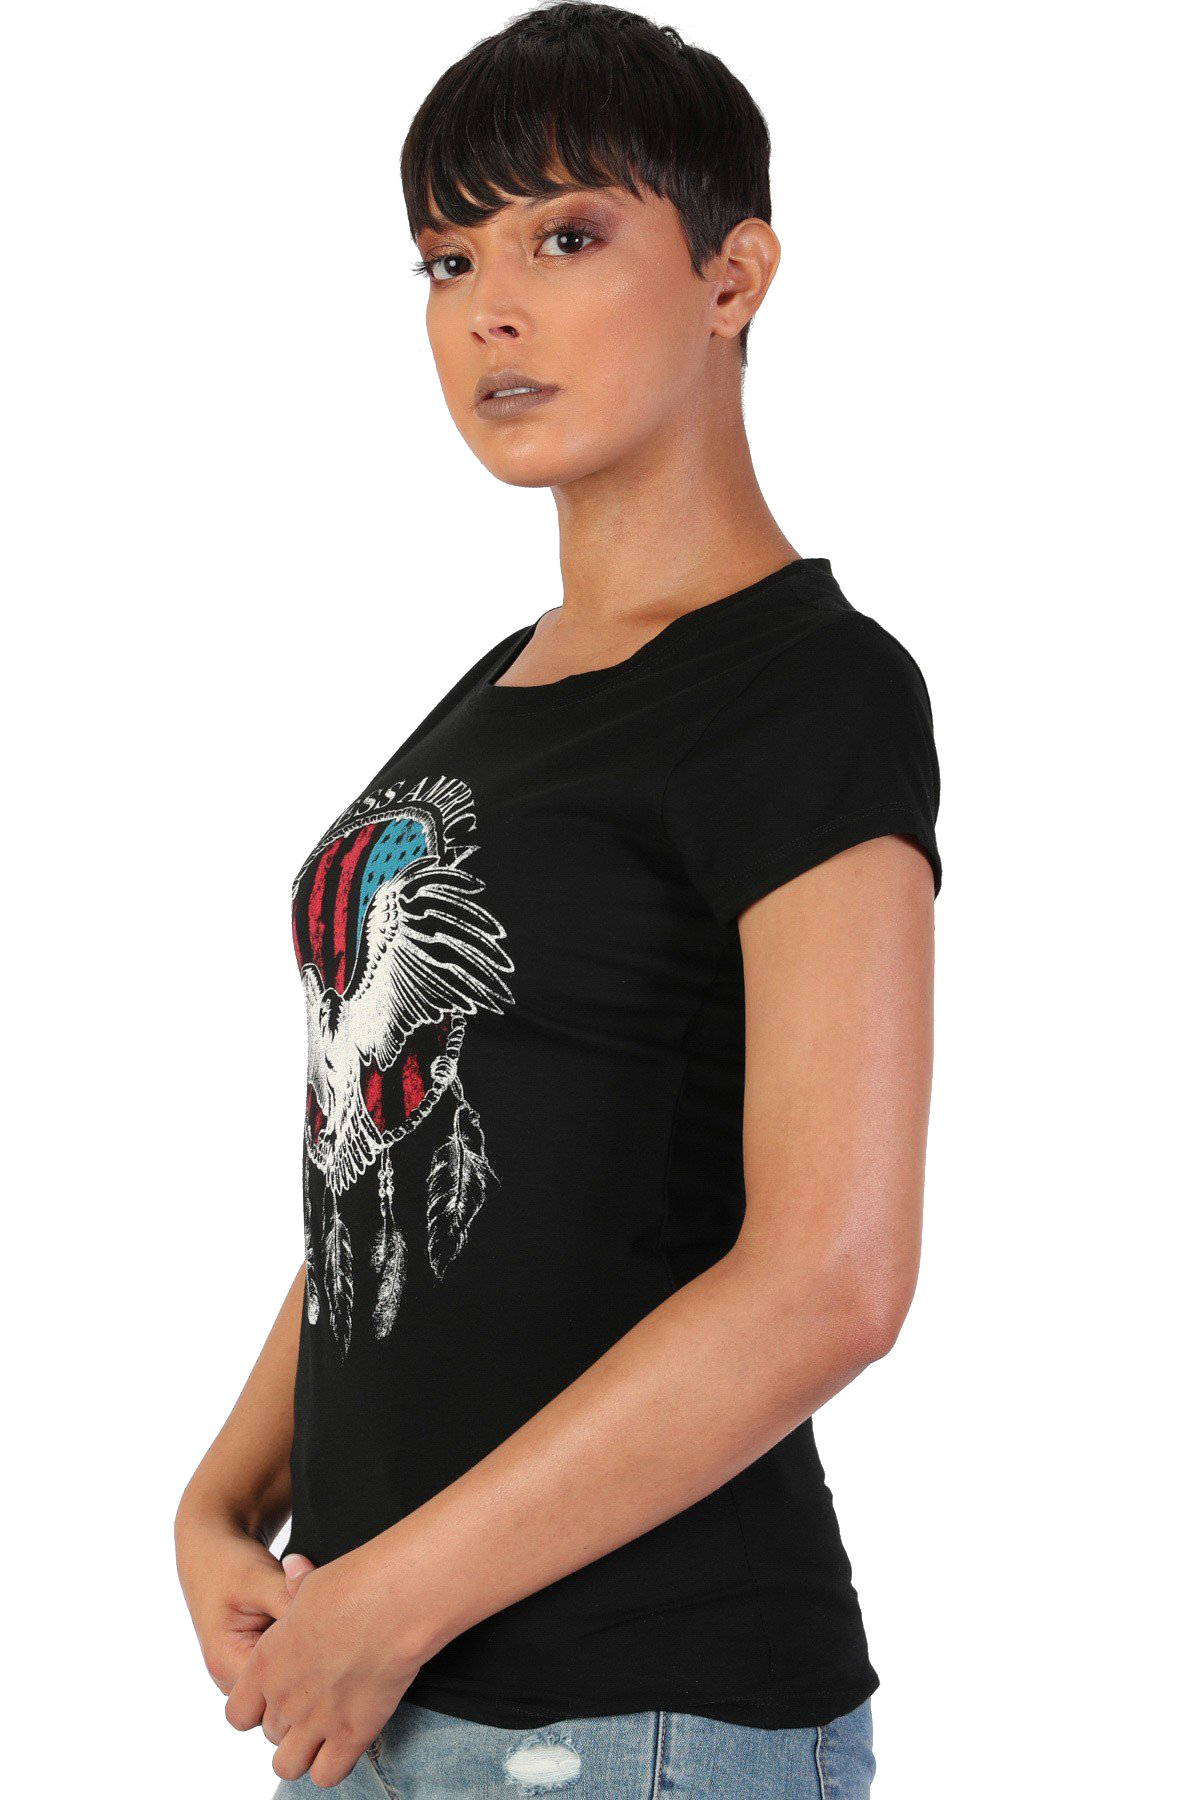 Women-039-s-Juniors-Patriotic-Casual-Graphic-Print-Short-Sleeve-T-Shirt-Top thumbnail 6